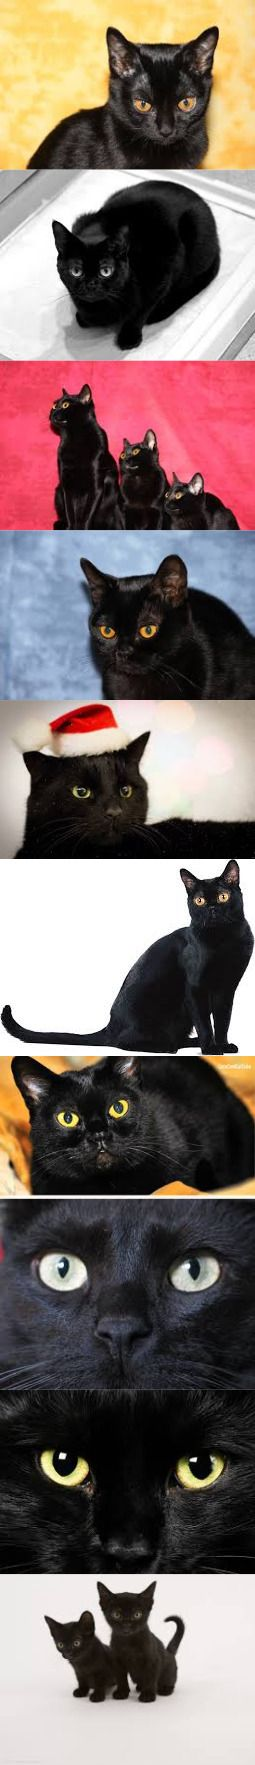 Amazing Facts About Bombay Cat. Definitely Must Read!